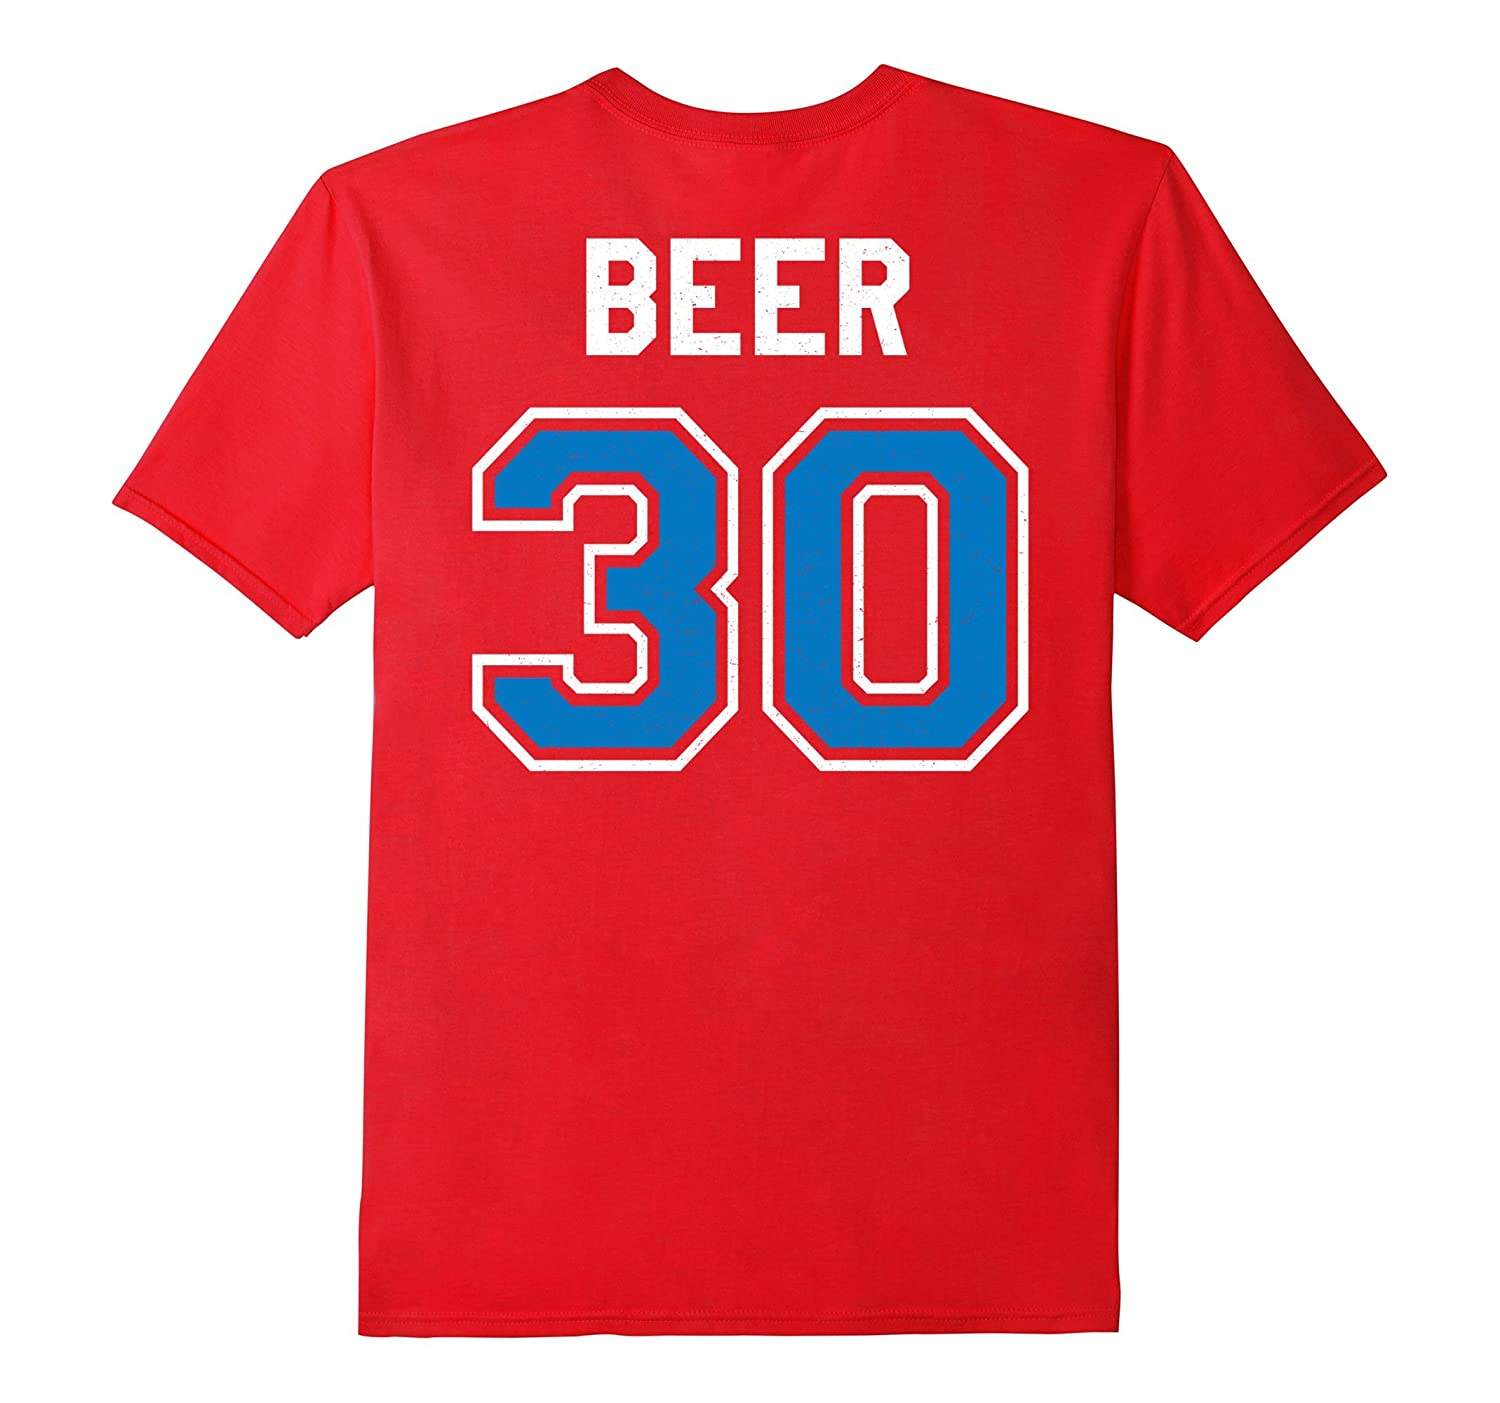 Beer 30 Athlete Uniform Jersey Funny Gag Gift Blue T-Shirt-FL